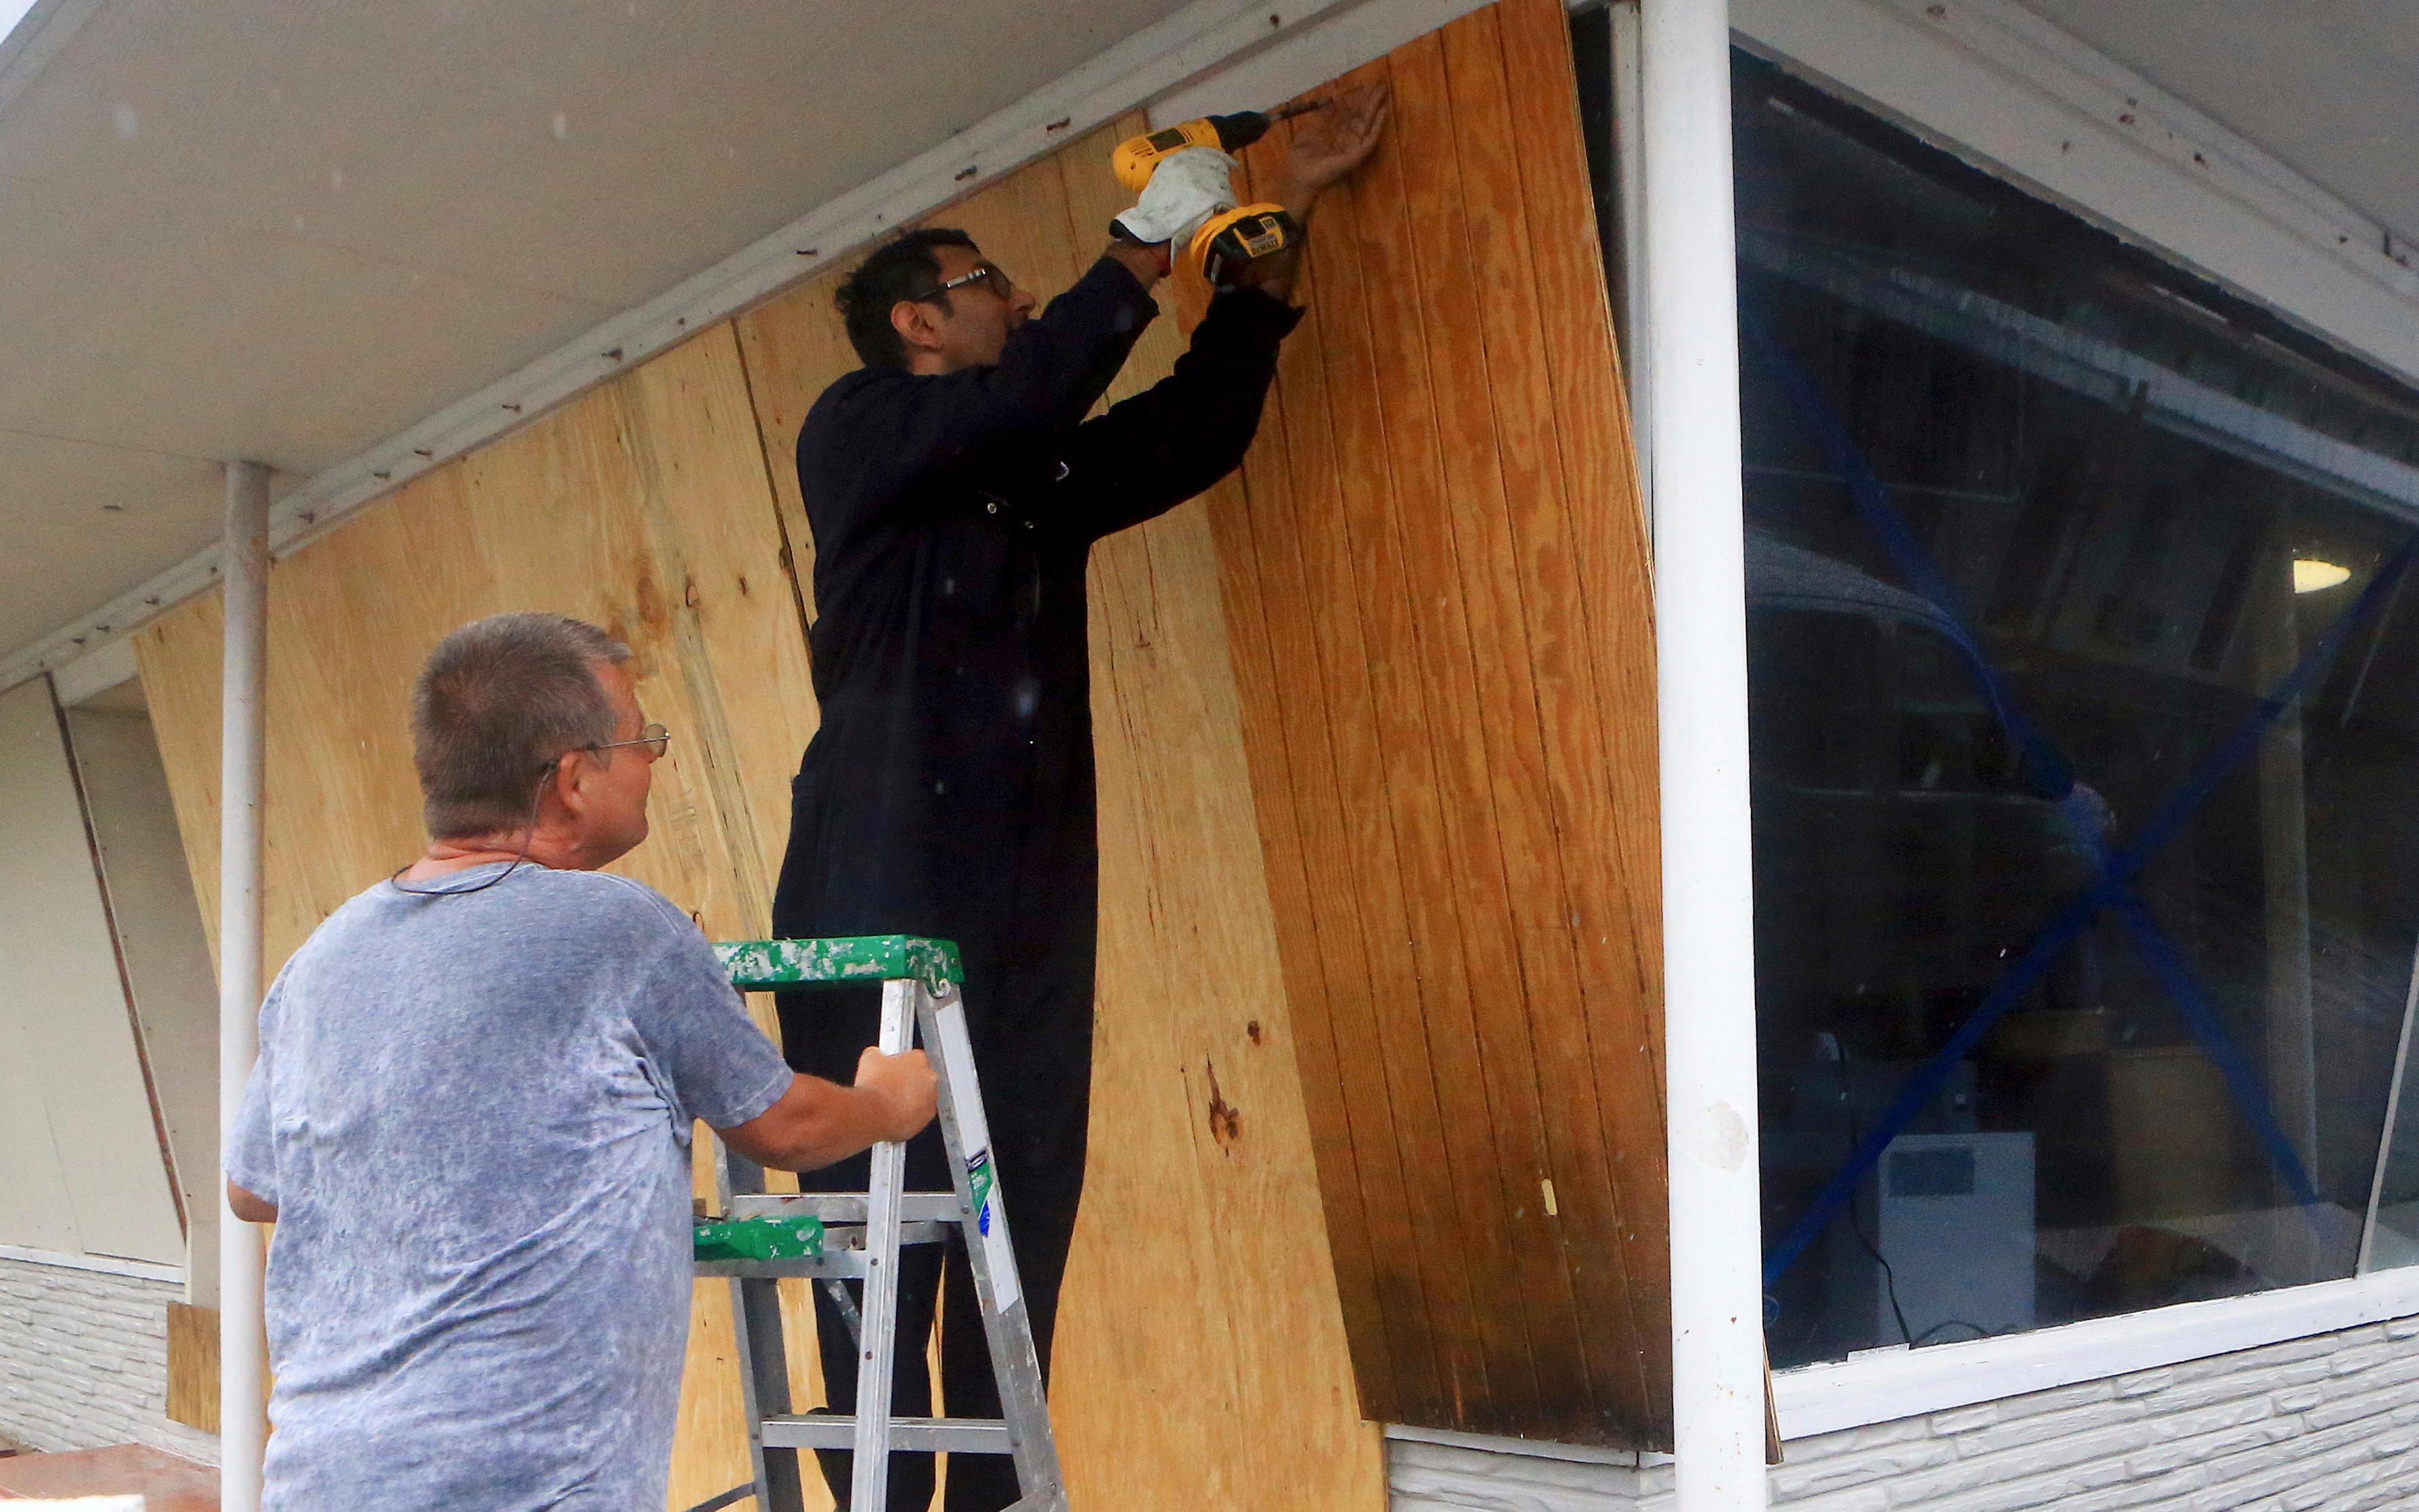 Vimal Patel  boards up windows with the help of Carl Bledsoe (left)  at the Catalina Motel as Hurricane Harvey approaches the Coastal Bend area on Friday, Aug. 25, 2017, in Corpus Christi, Texas. The National Hurricane Center warns that conditions are deteriorating as Hurricane Harvey strengthens and slowly moves toward the Texas coast. (Gabe Hernandez/Corpus Christi Caller-Times via AP)